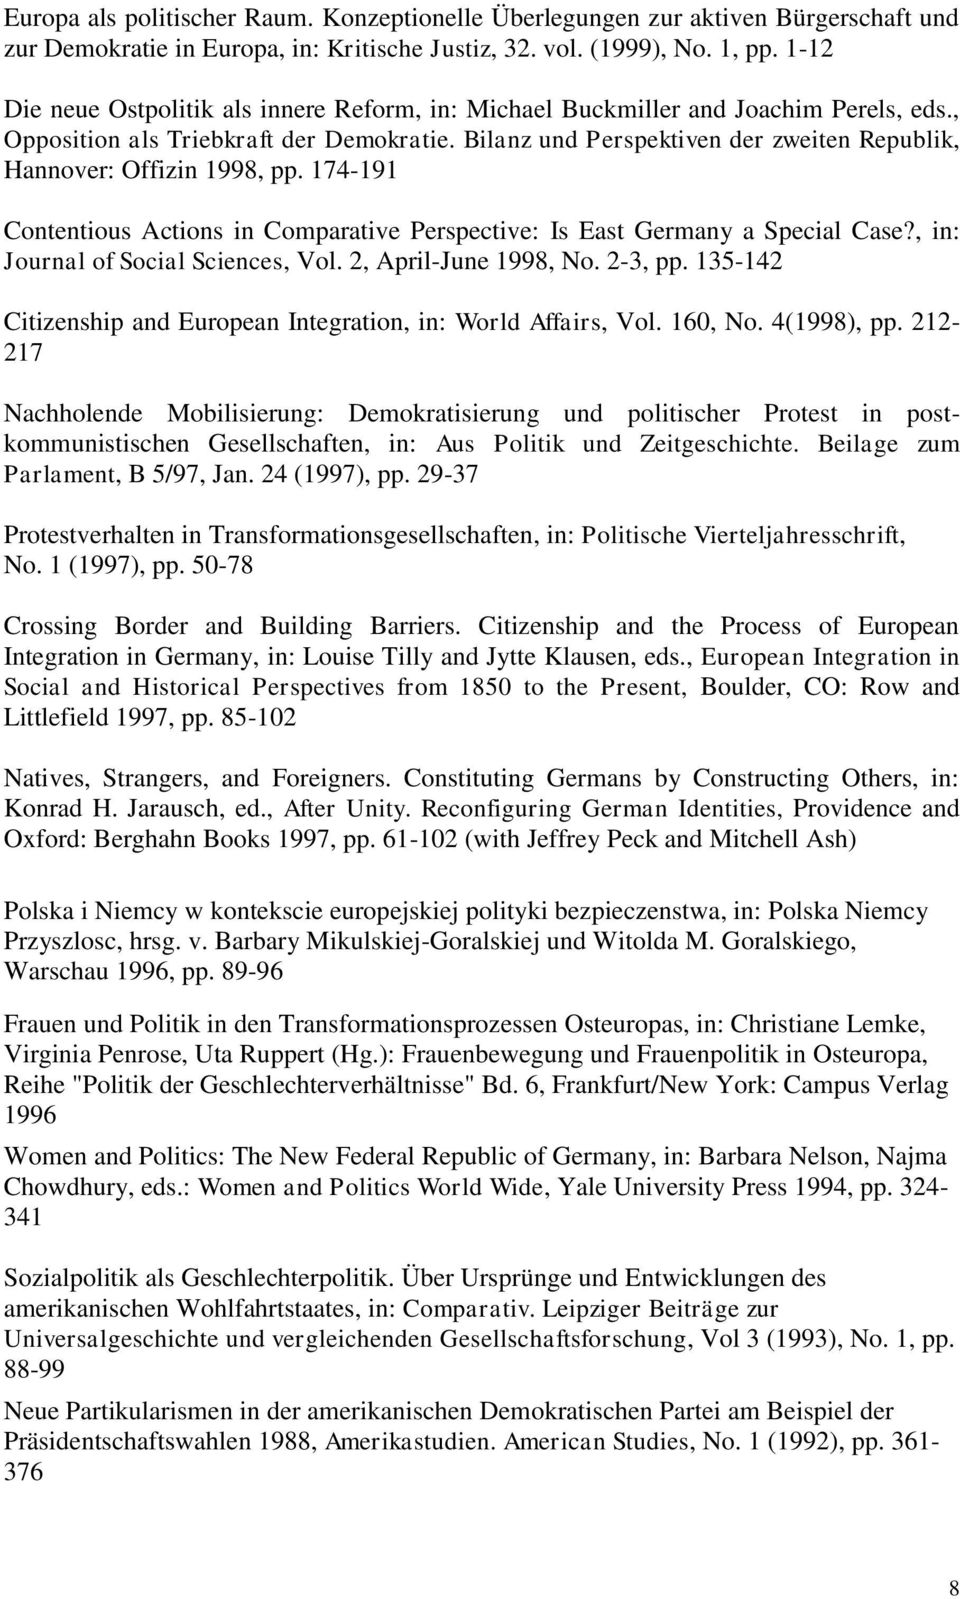 Bilanz und Perspektiven der zweiten Republik, Hannover: Offizin 1998, pp. 174-191 Contentious Actions in Comparative Perspective: Is East Germany a Special Case?, in: Journal of Social Sciences, Vol.